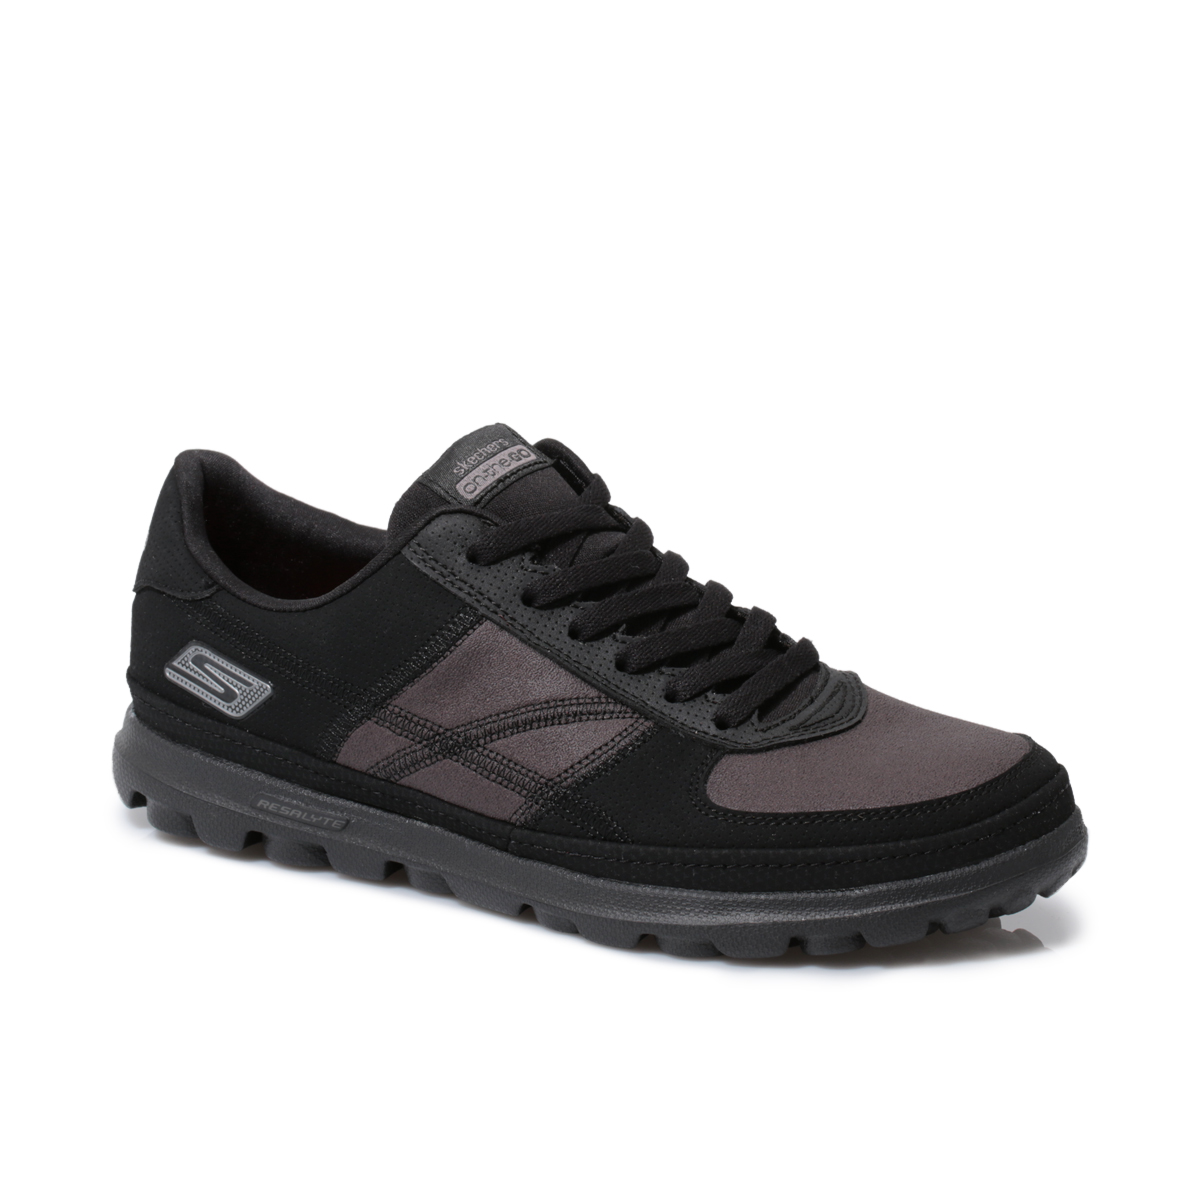 skechers on the go overcome black womens trainers sneakers